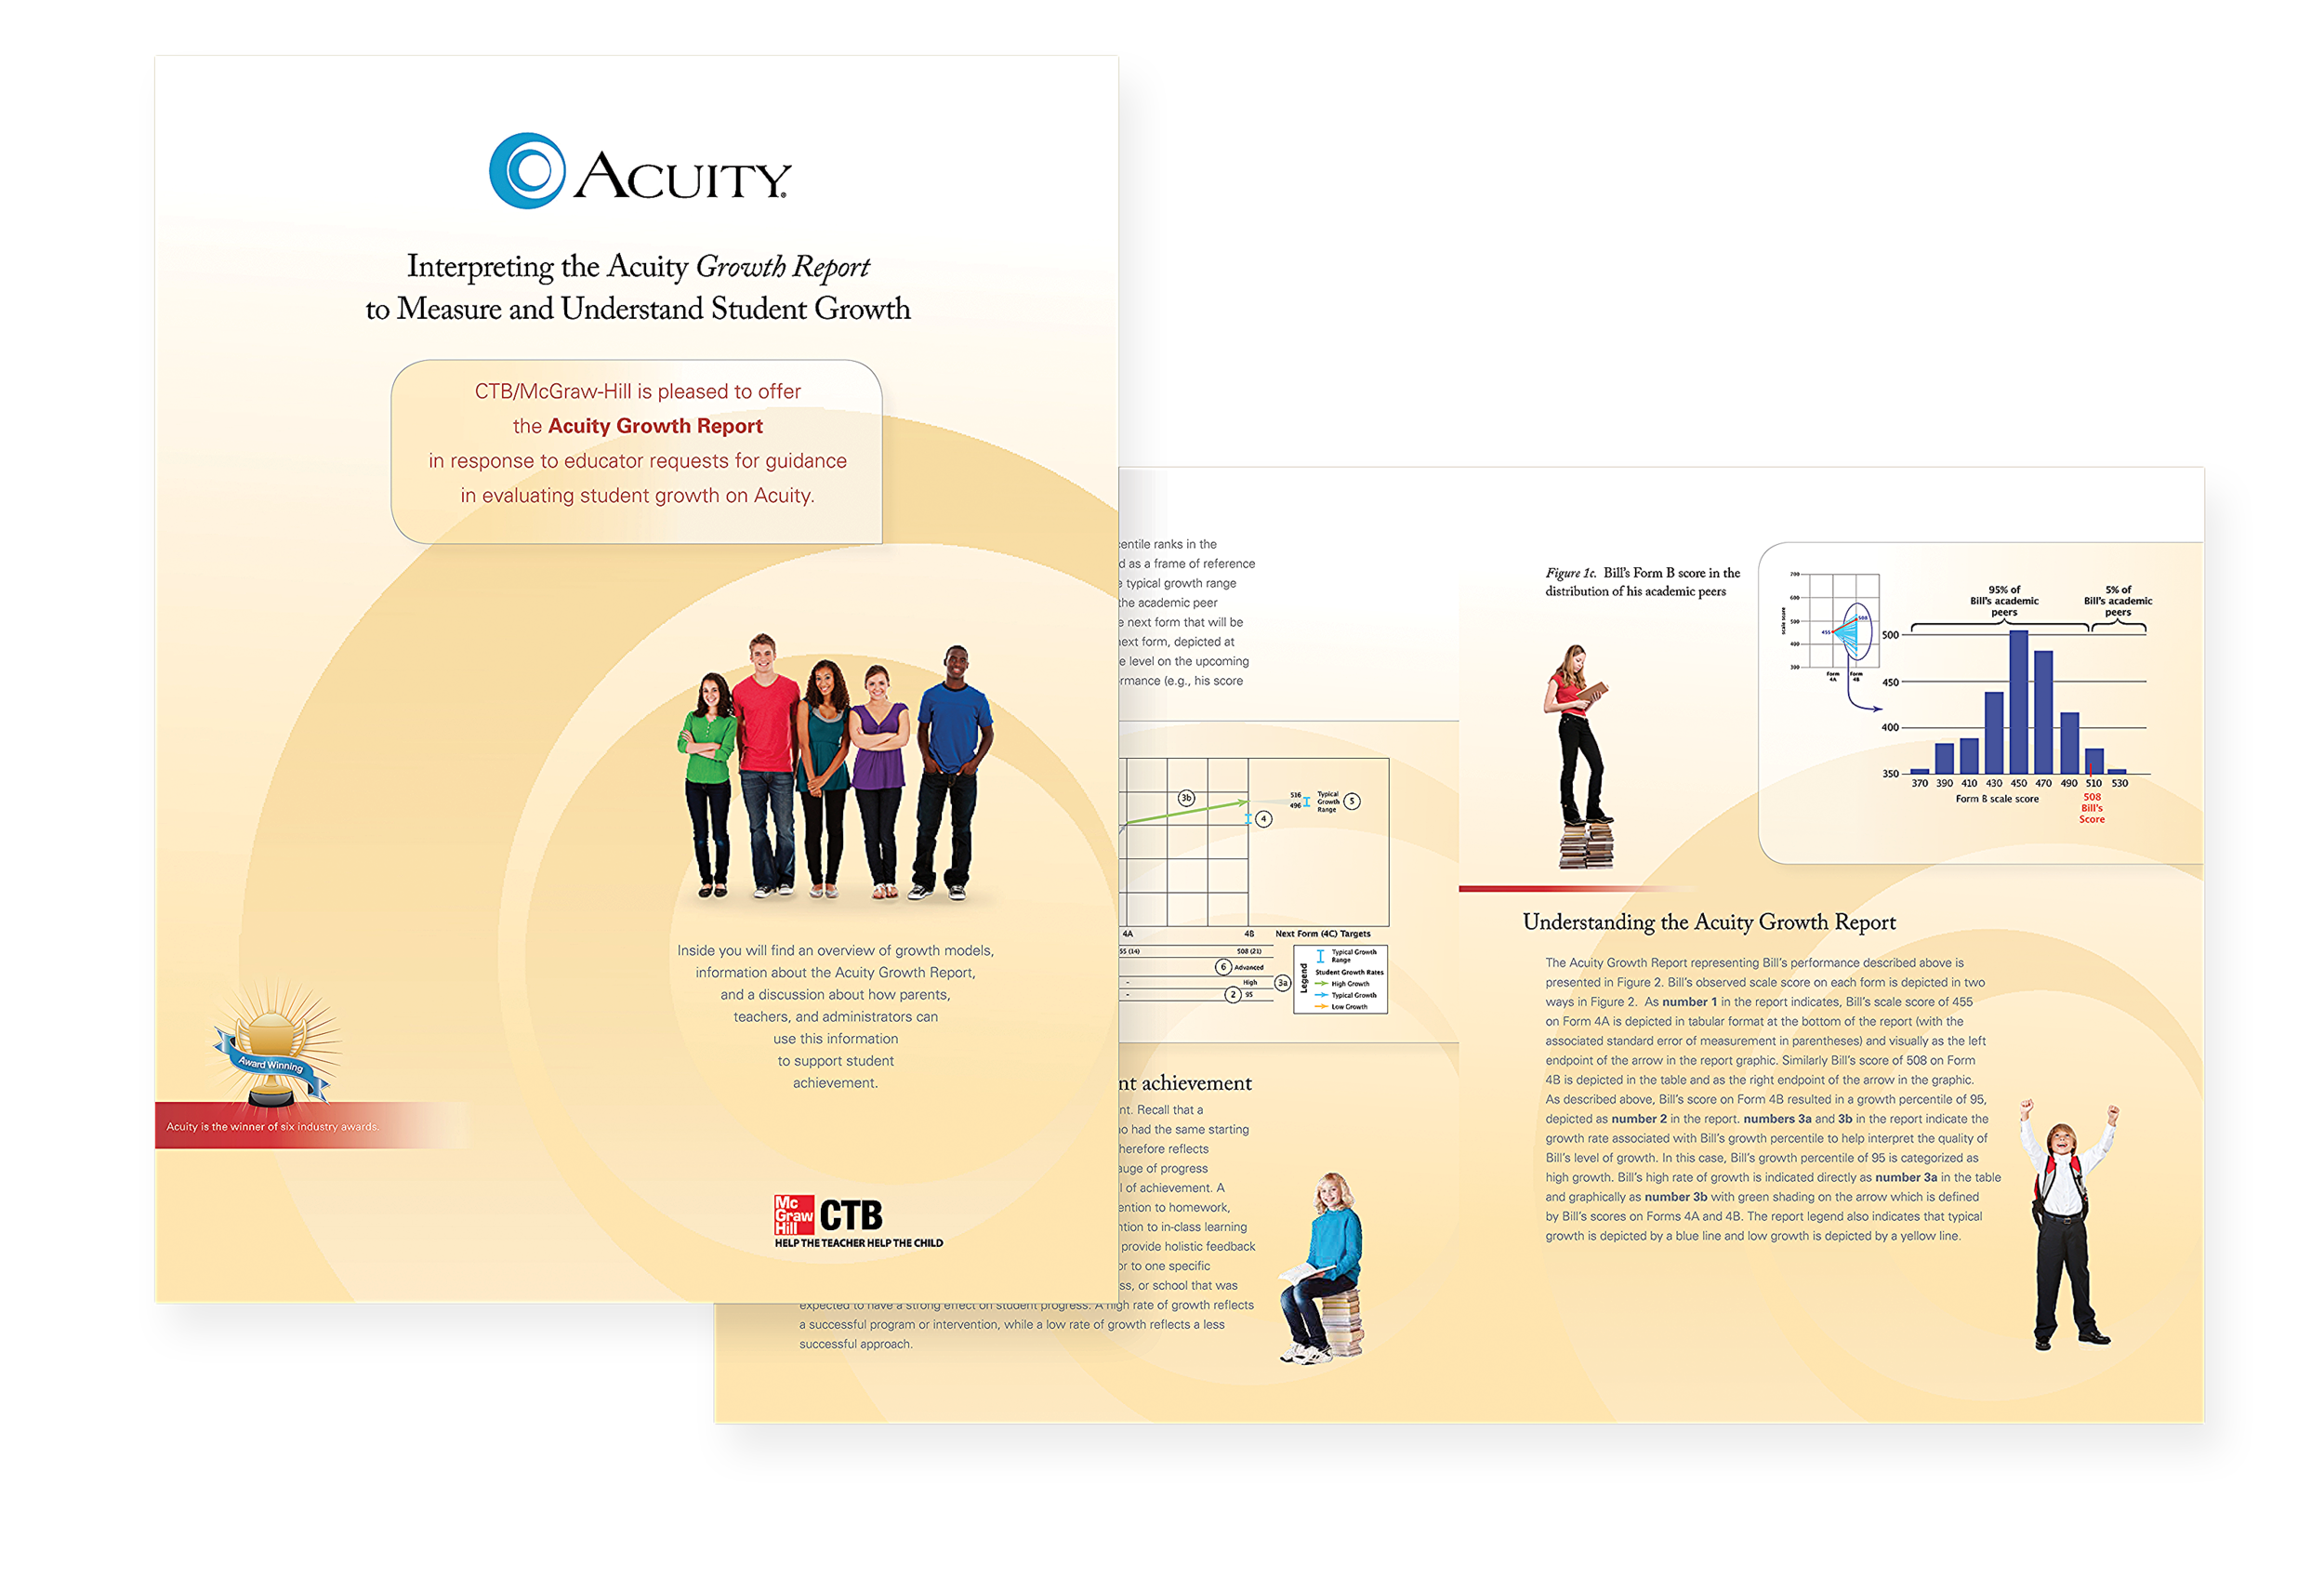 Acuity 16 page brochure takes an in-depth look on how to use Acuity's growth reports to impact student achievement.